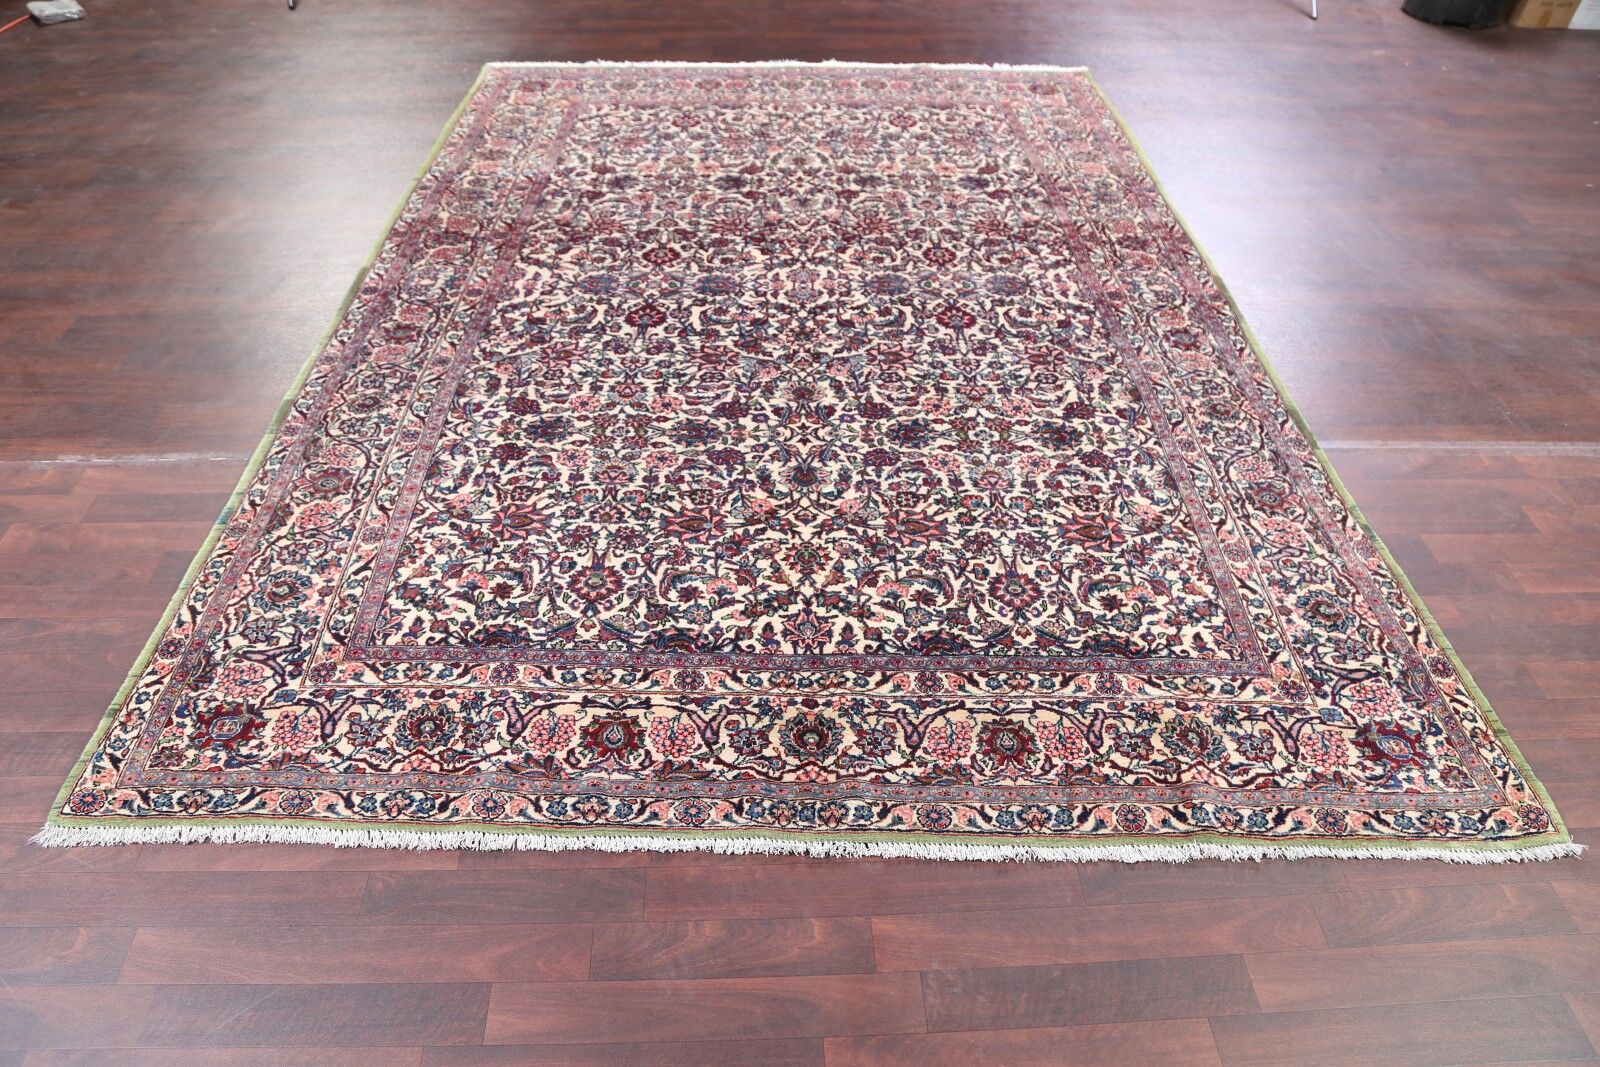 One-of-a-Kind Classical Floral Kerman Lavar Ravar Persian Hand-Knotted 7'3